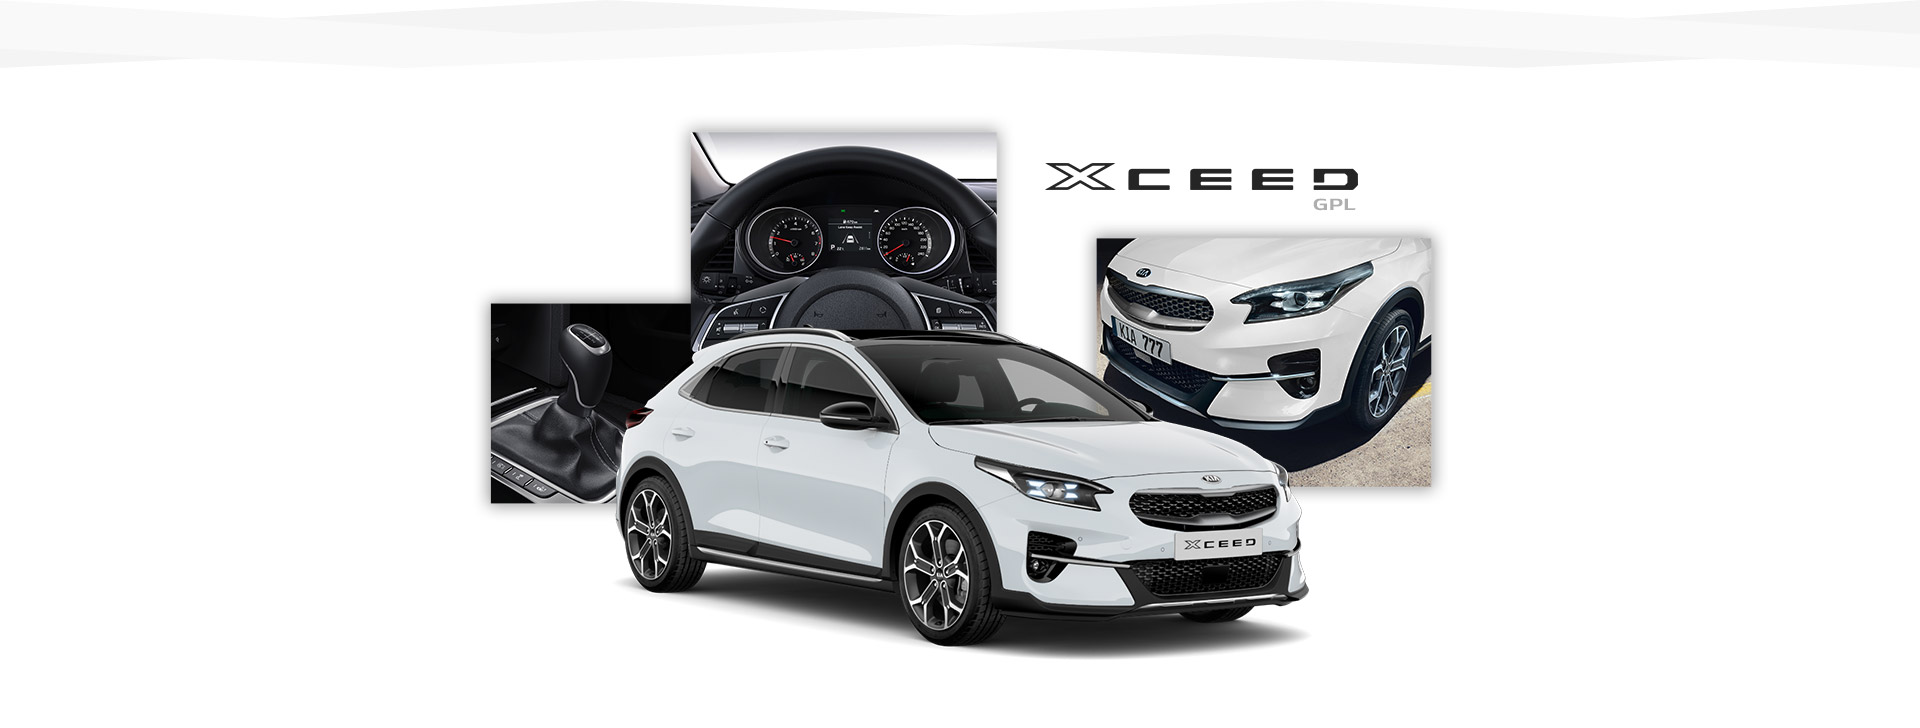 Side view of the Kia Xceed and shots of its interior and various controls